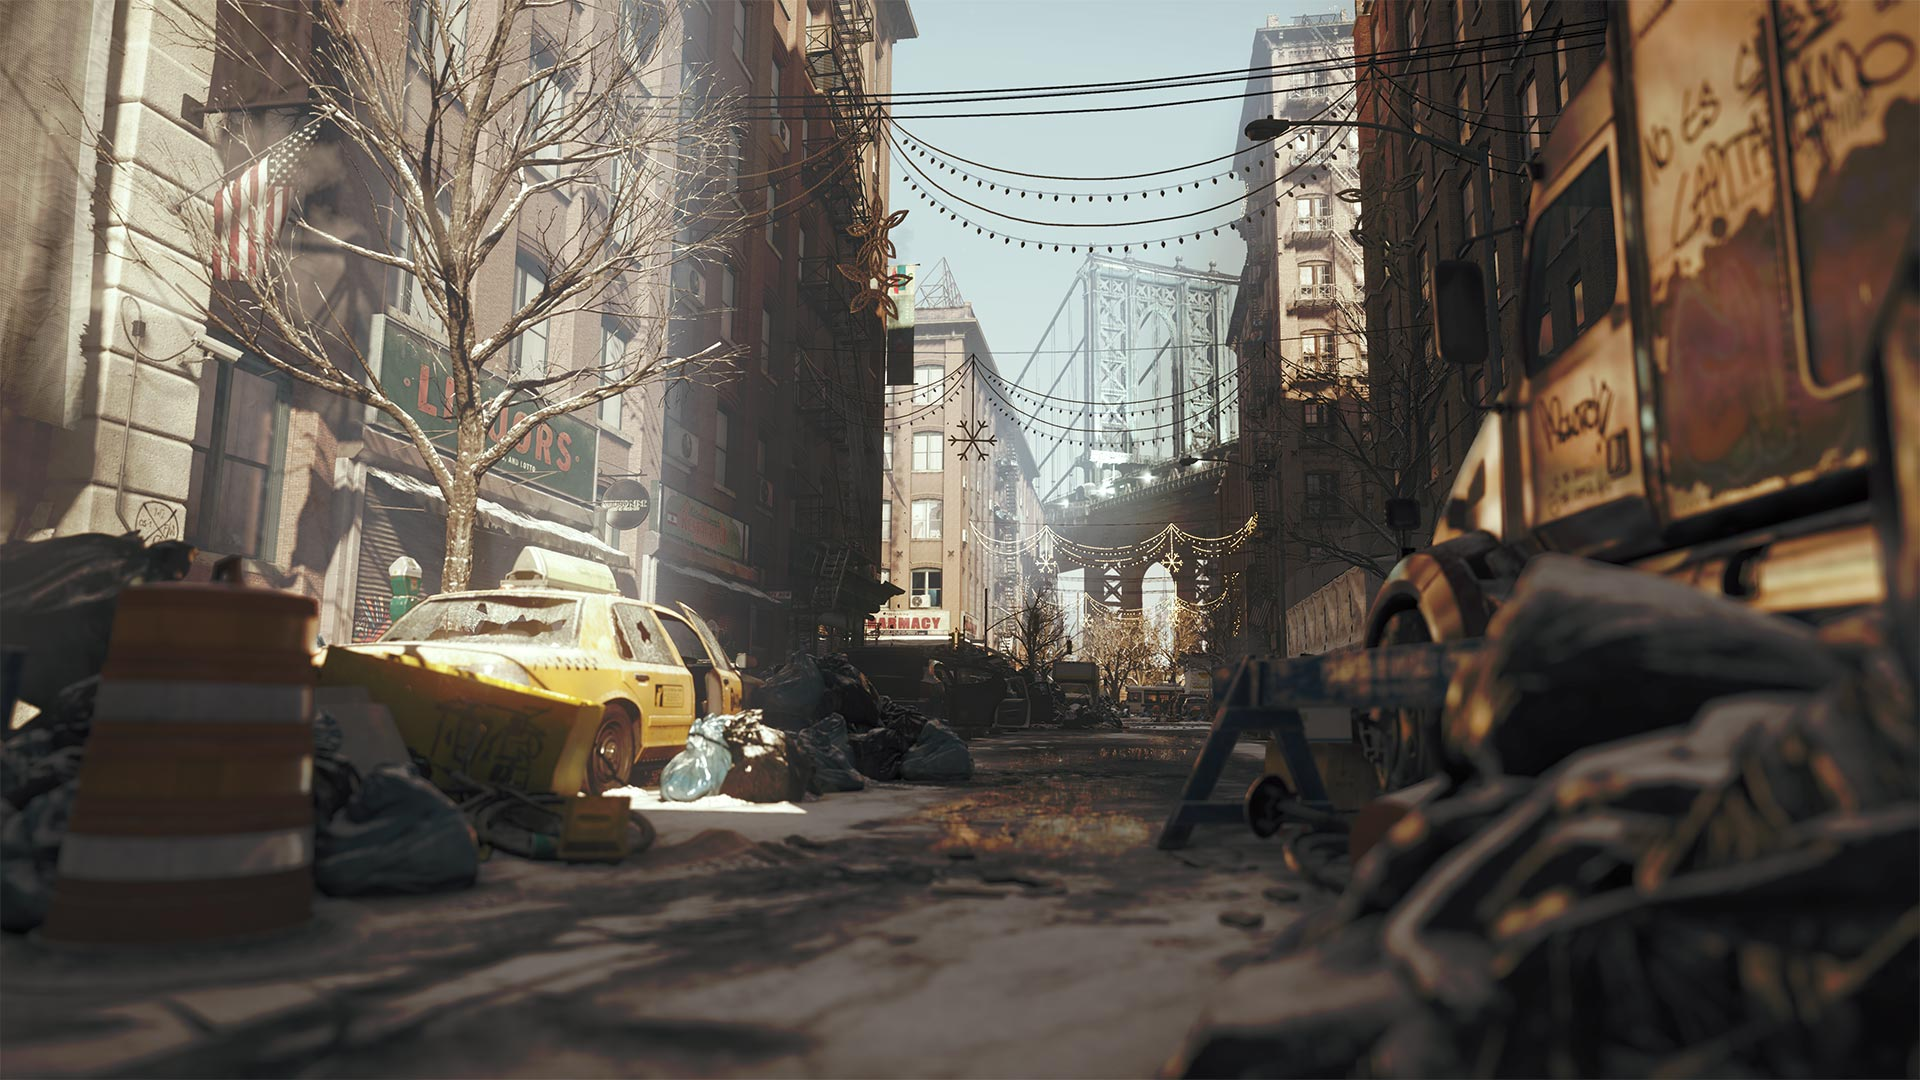 Tom clancy 39 s the division on ps4 xbox one and pc - Div games studio ...